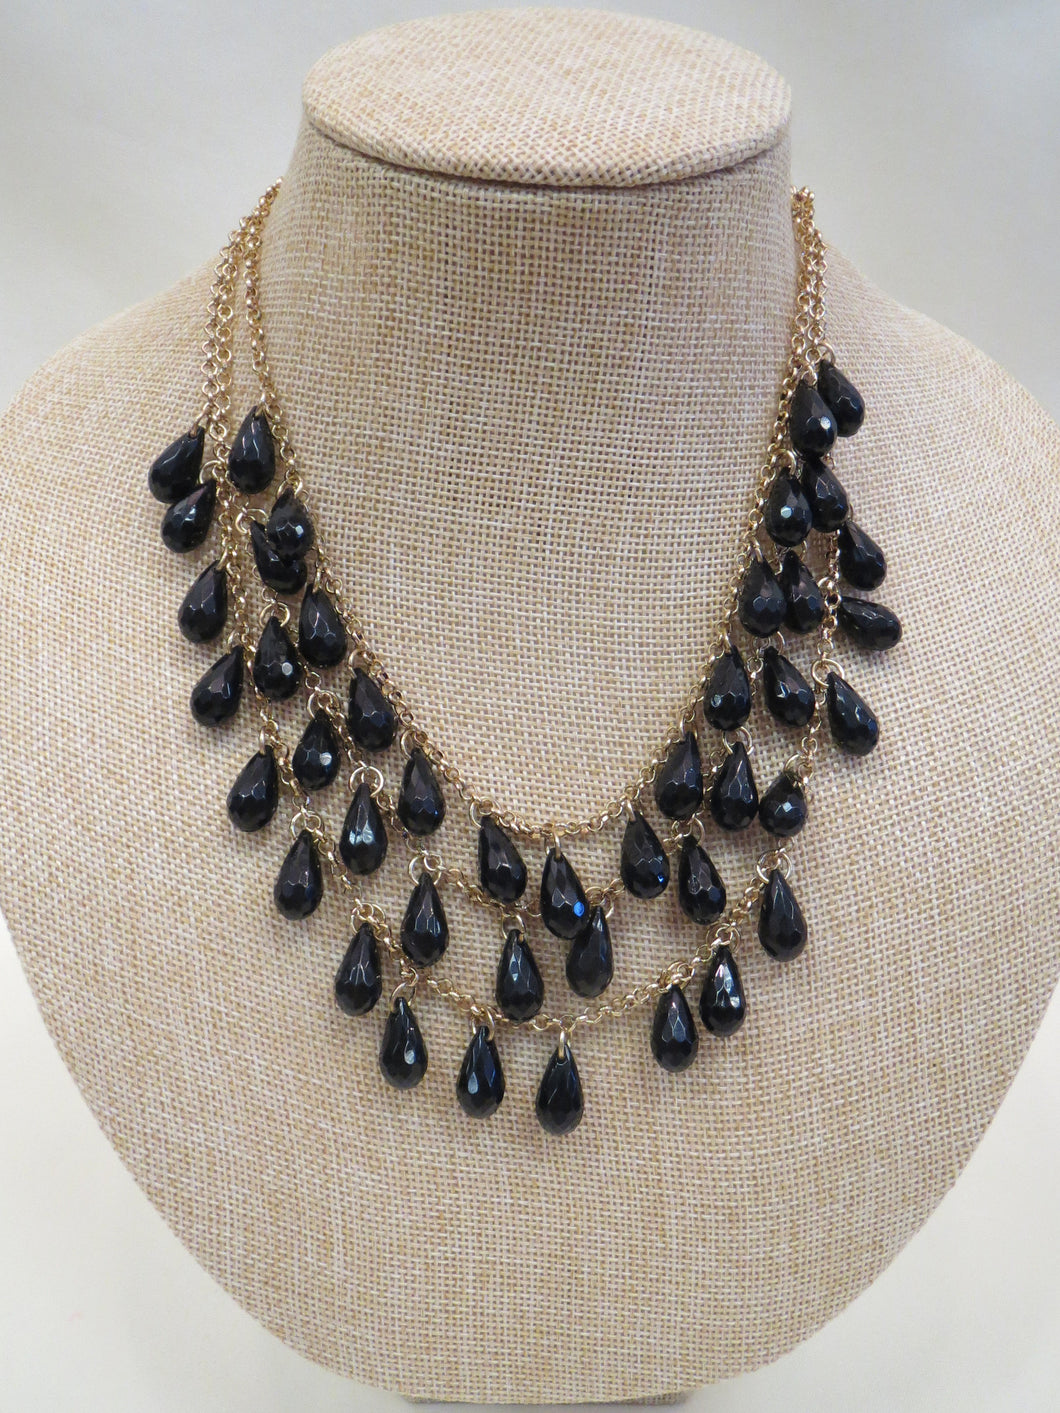 ADO Three Layer Black & Gold Necklace | All Dec'd Out